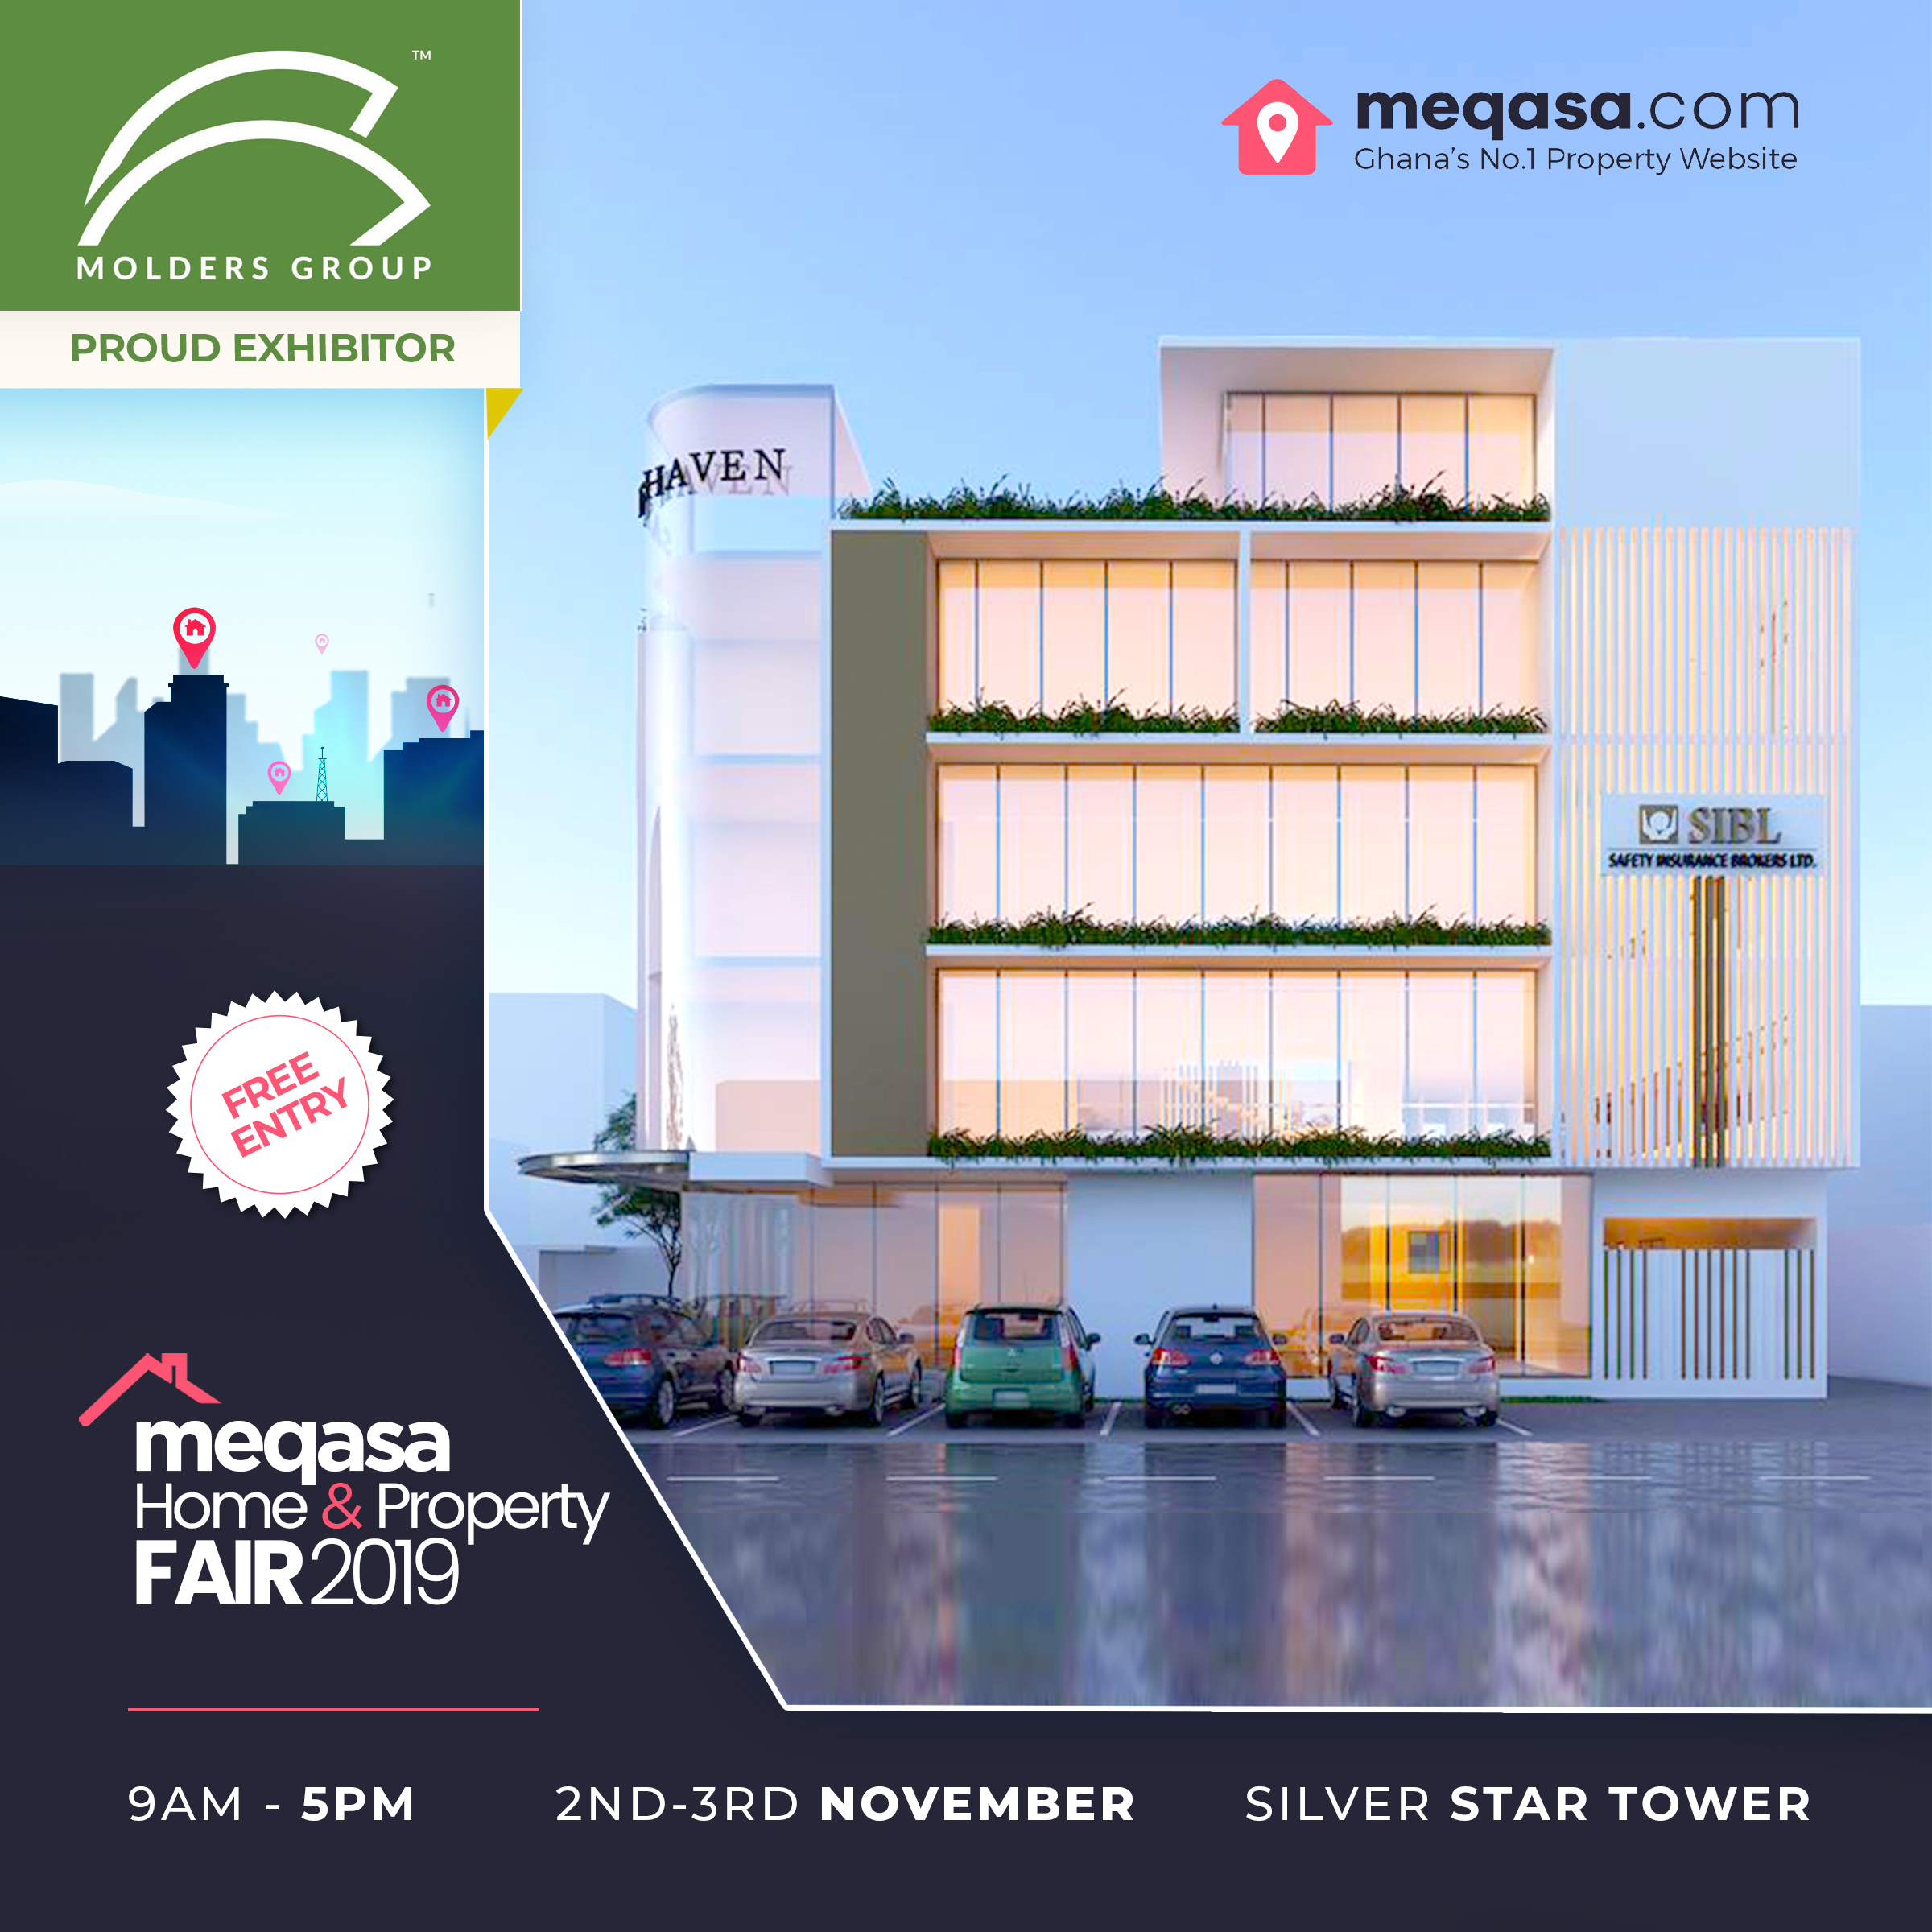 Molders Group at Meqasa Home & Property Fair 2019